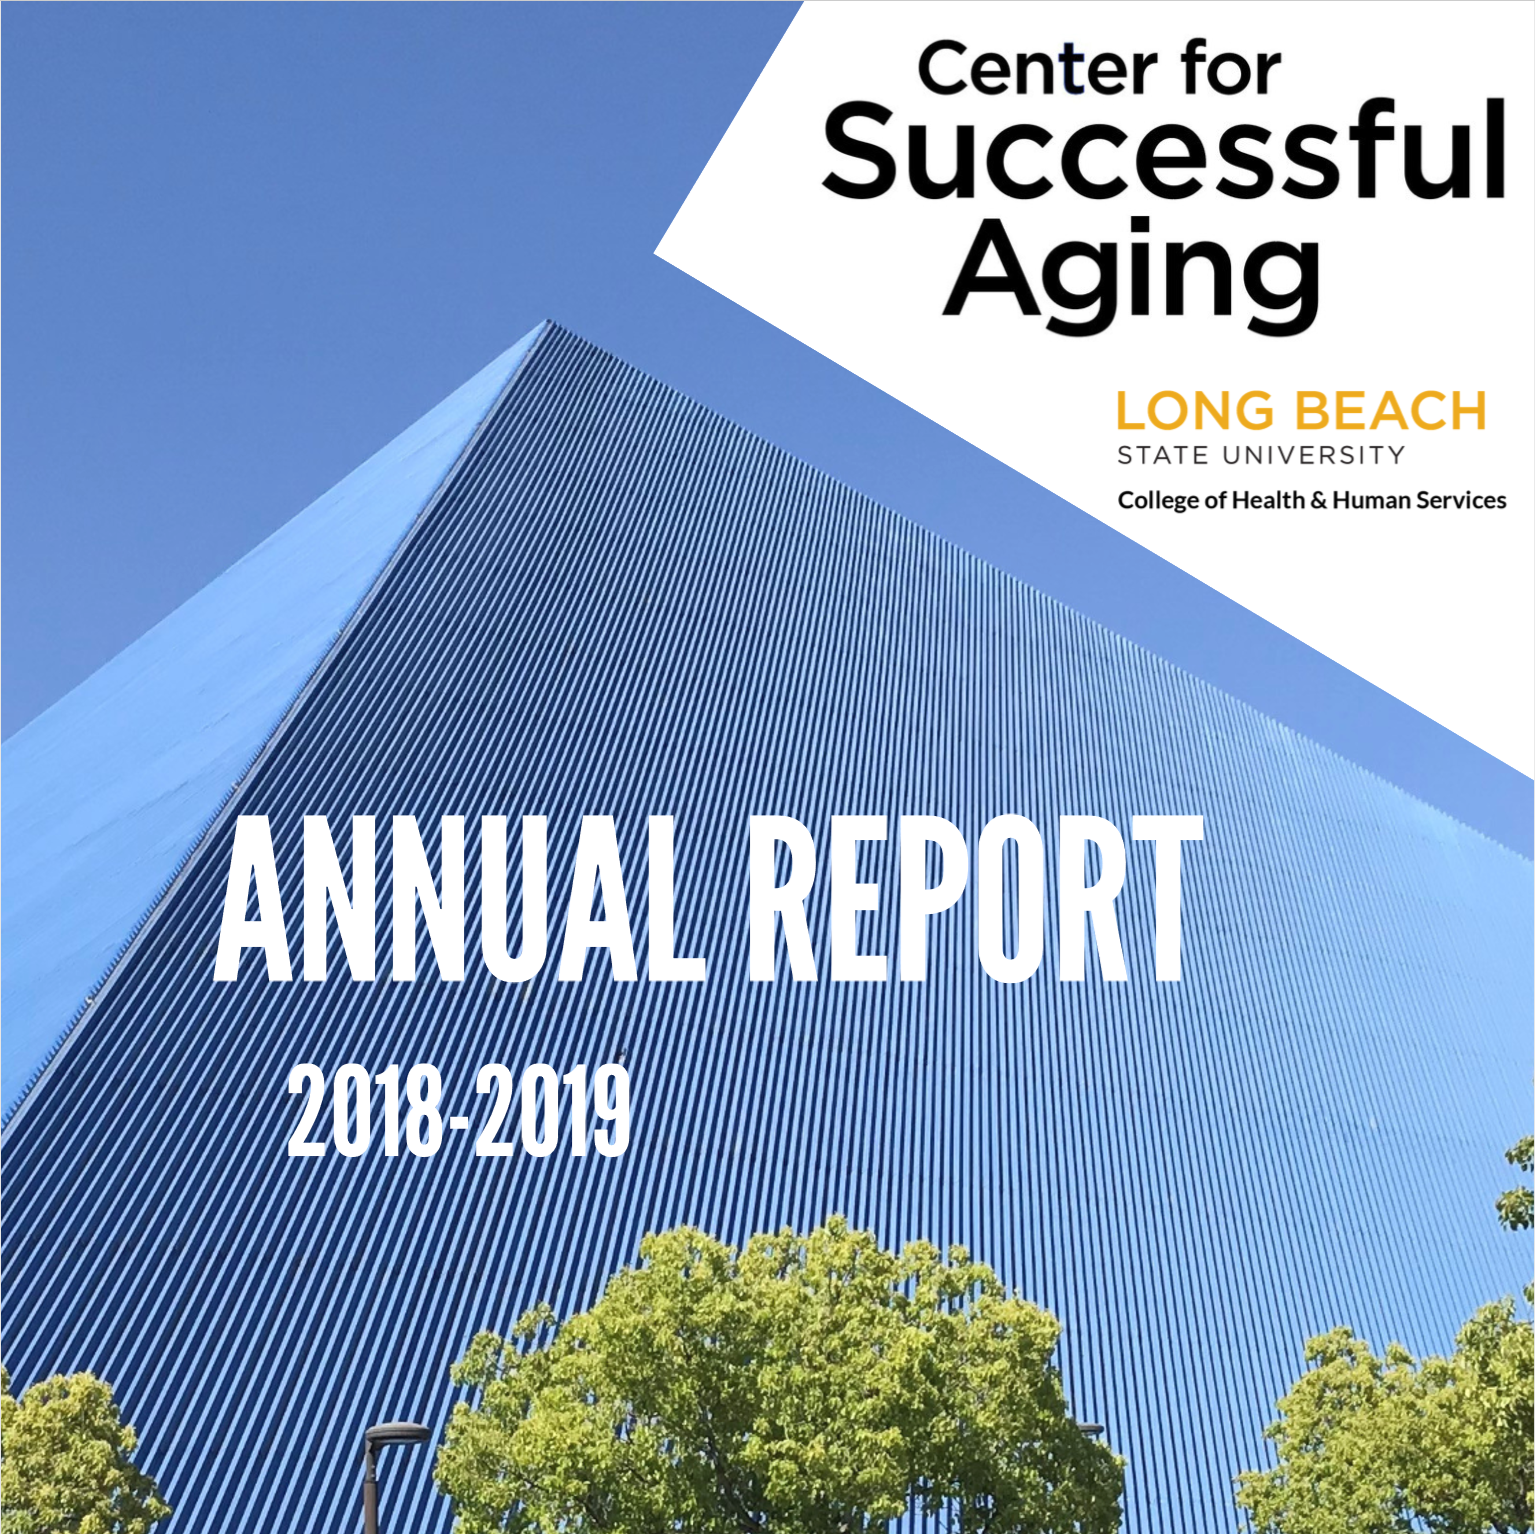 Center for Successful Aging Annual Report Cover Page